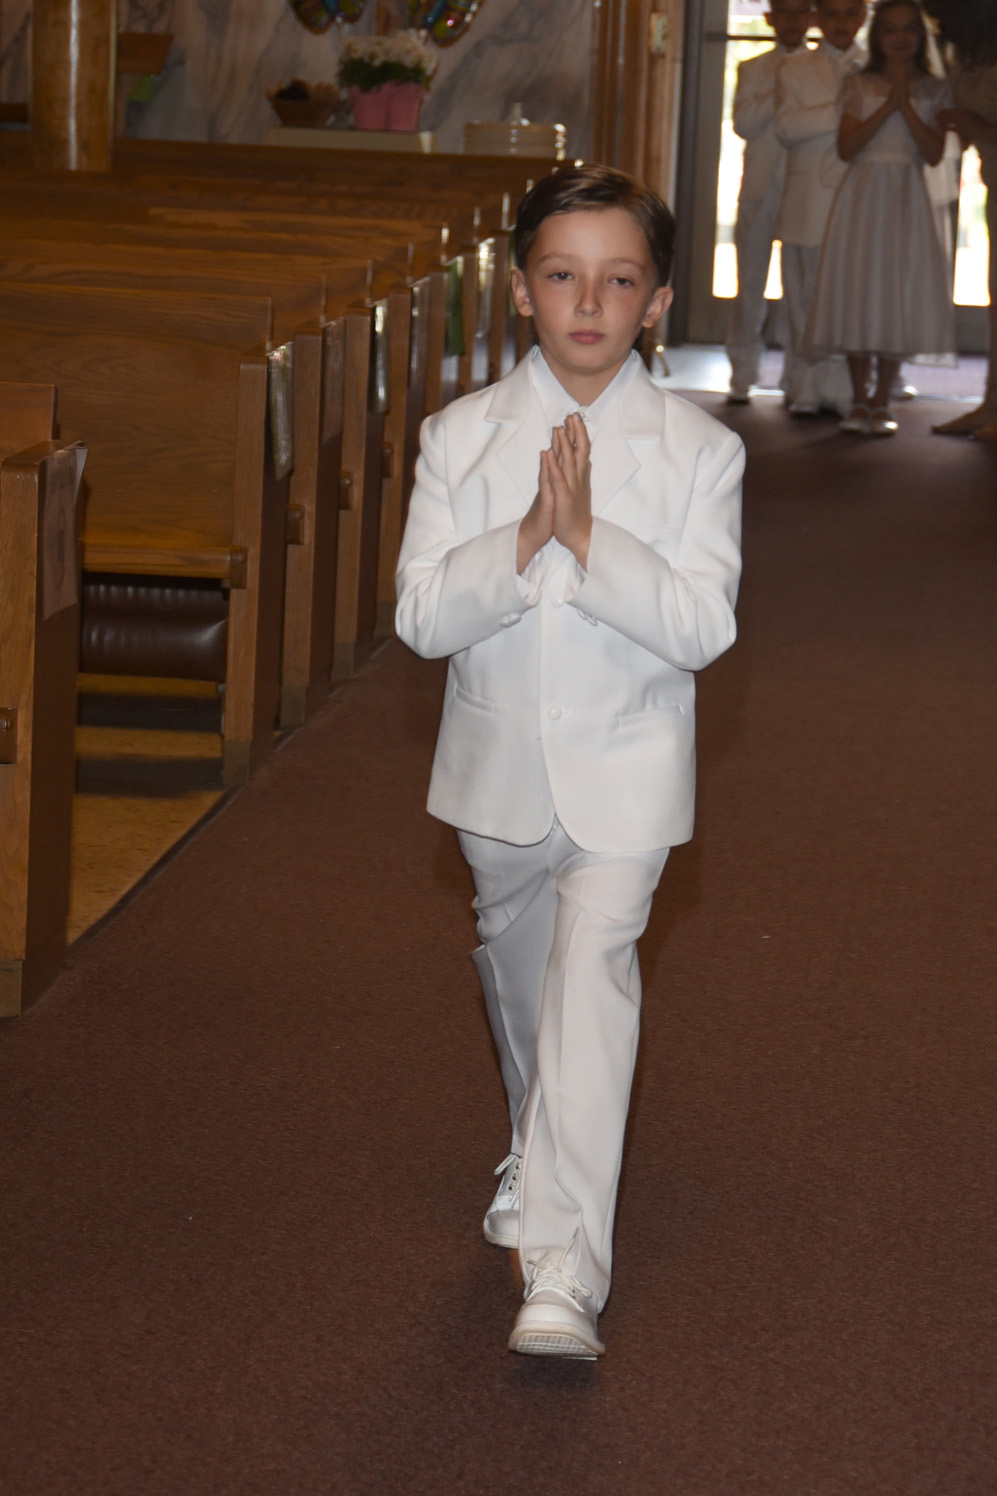 FIRST-COMMUNION-MAY-16-2021-169